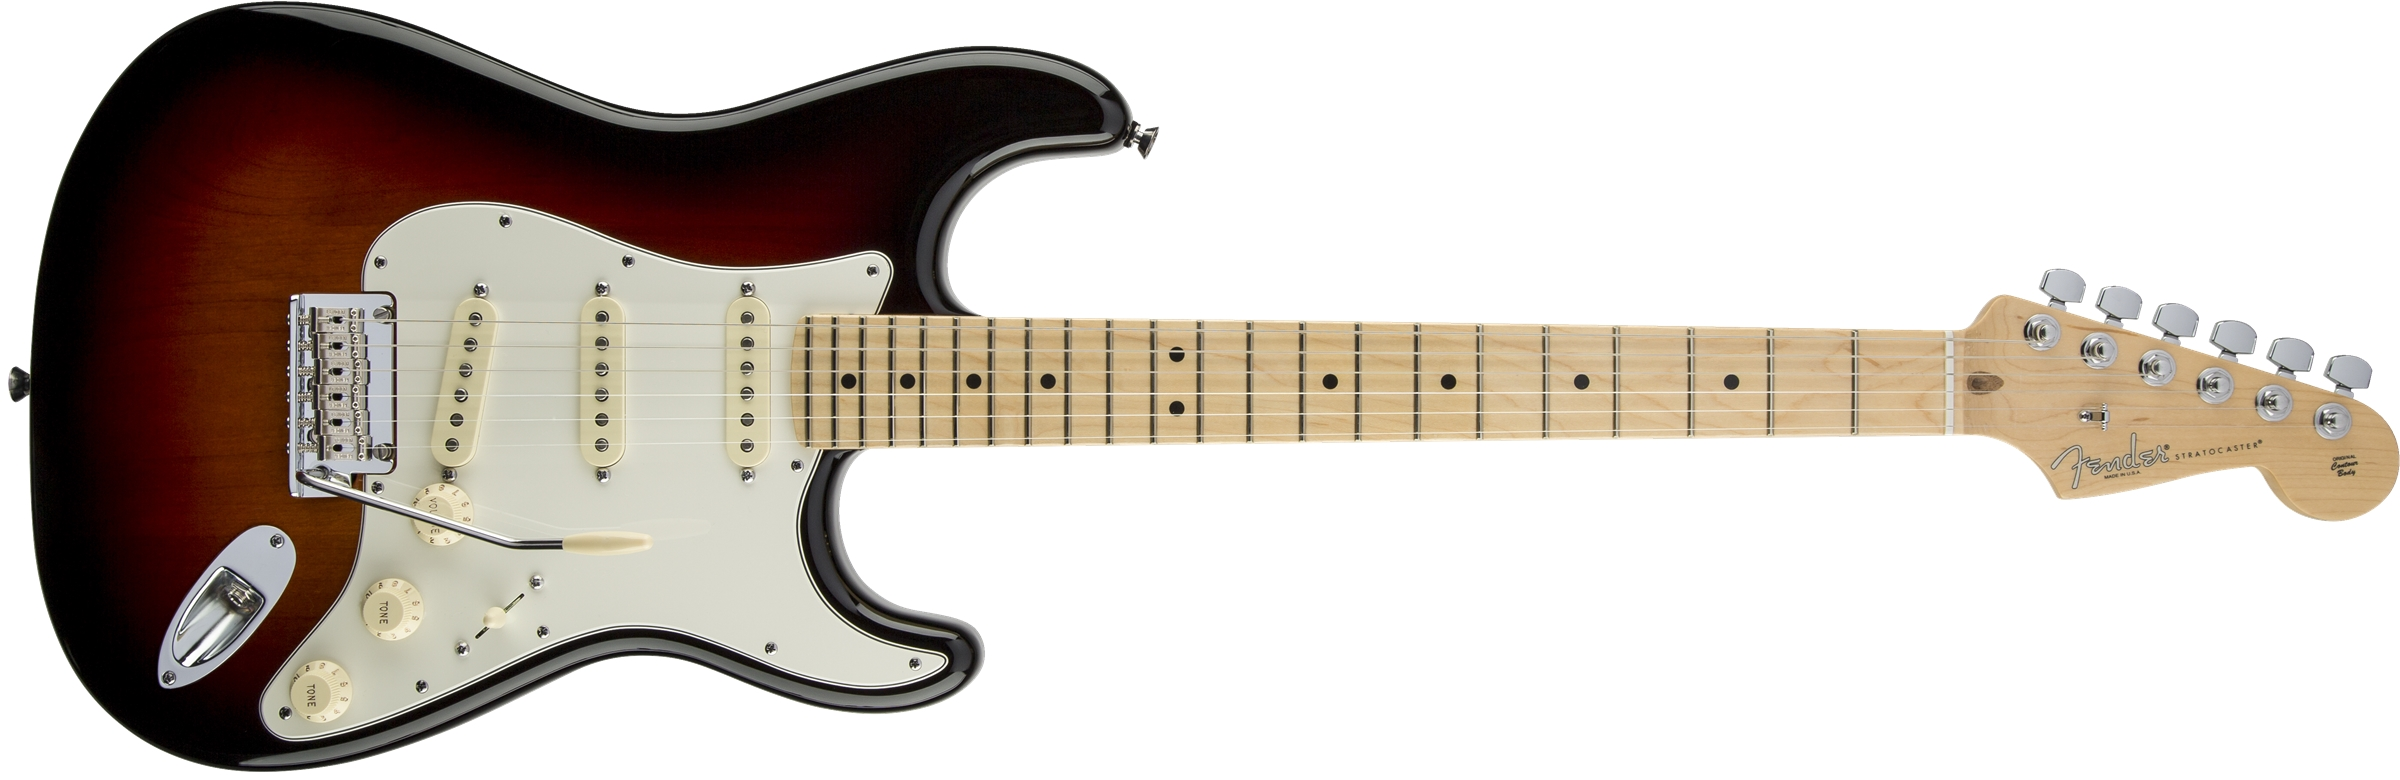 a classic that will live on forever reviews fender american standard stratocaster 2012 2016. Black Bedroom Furniture Sets. Home Design Ideas